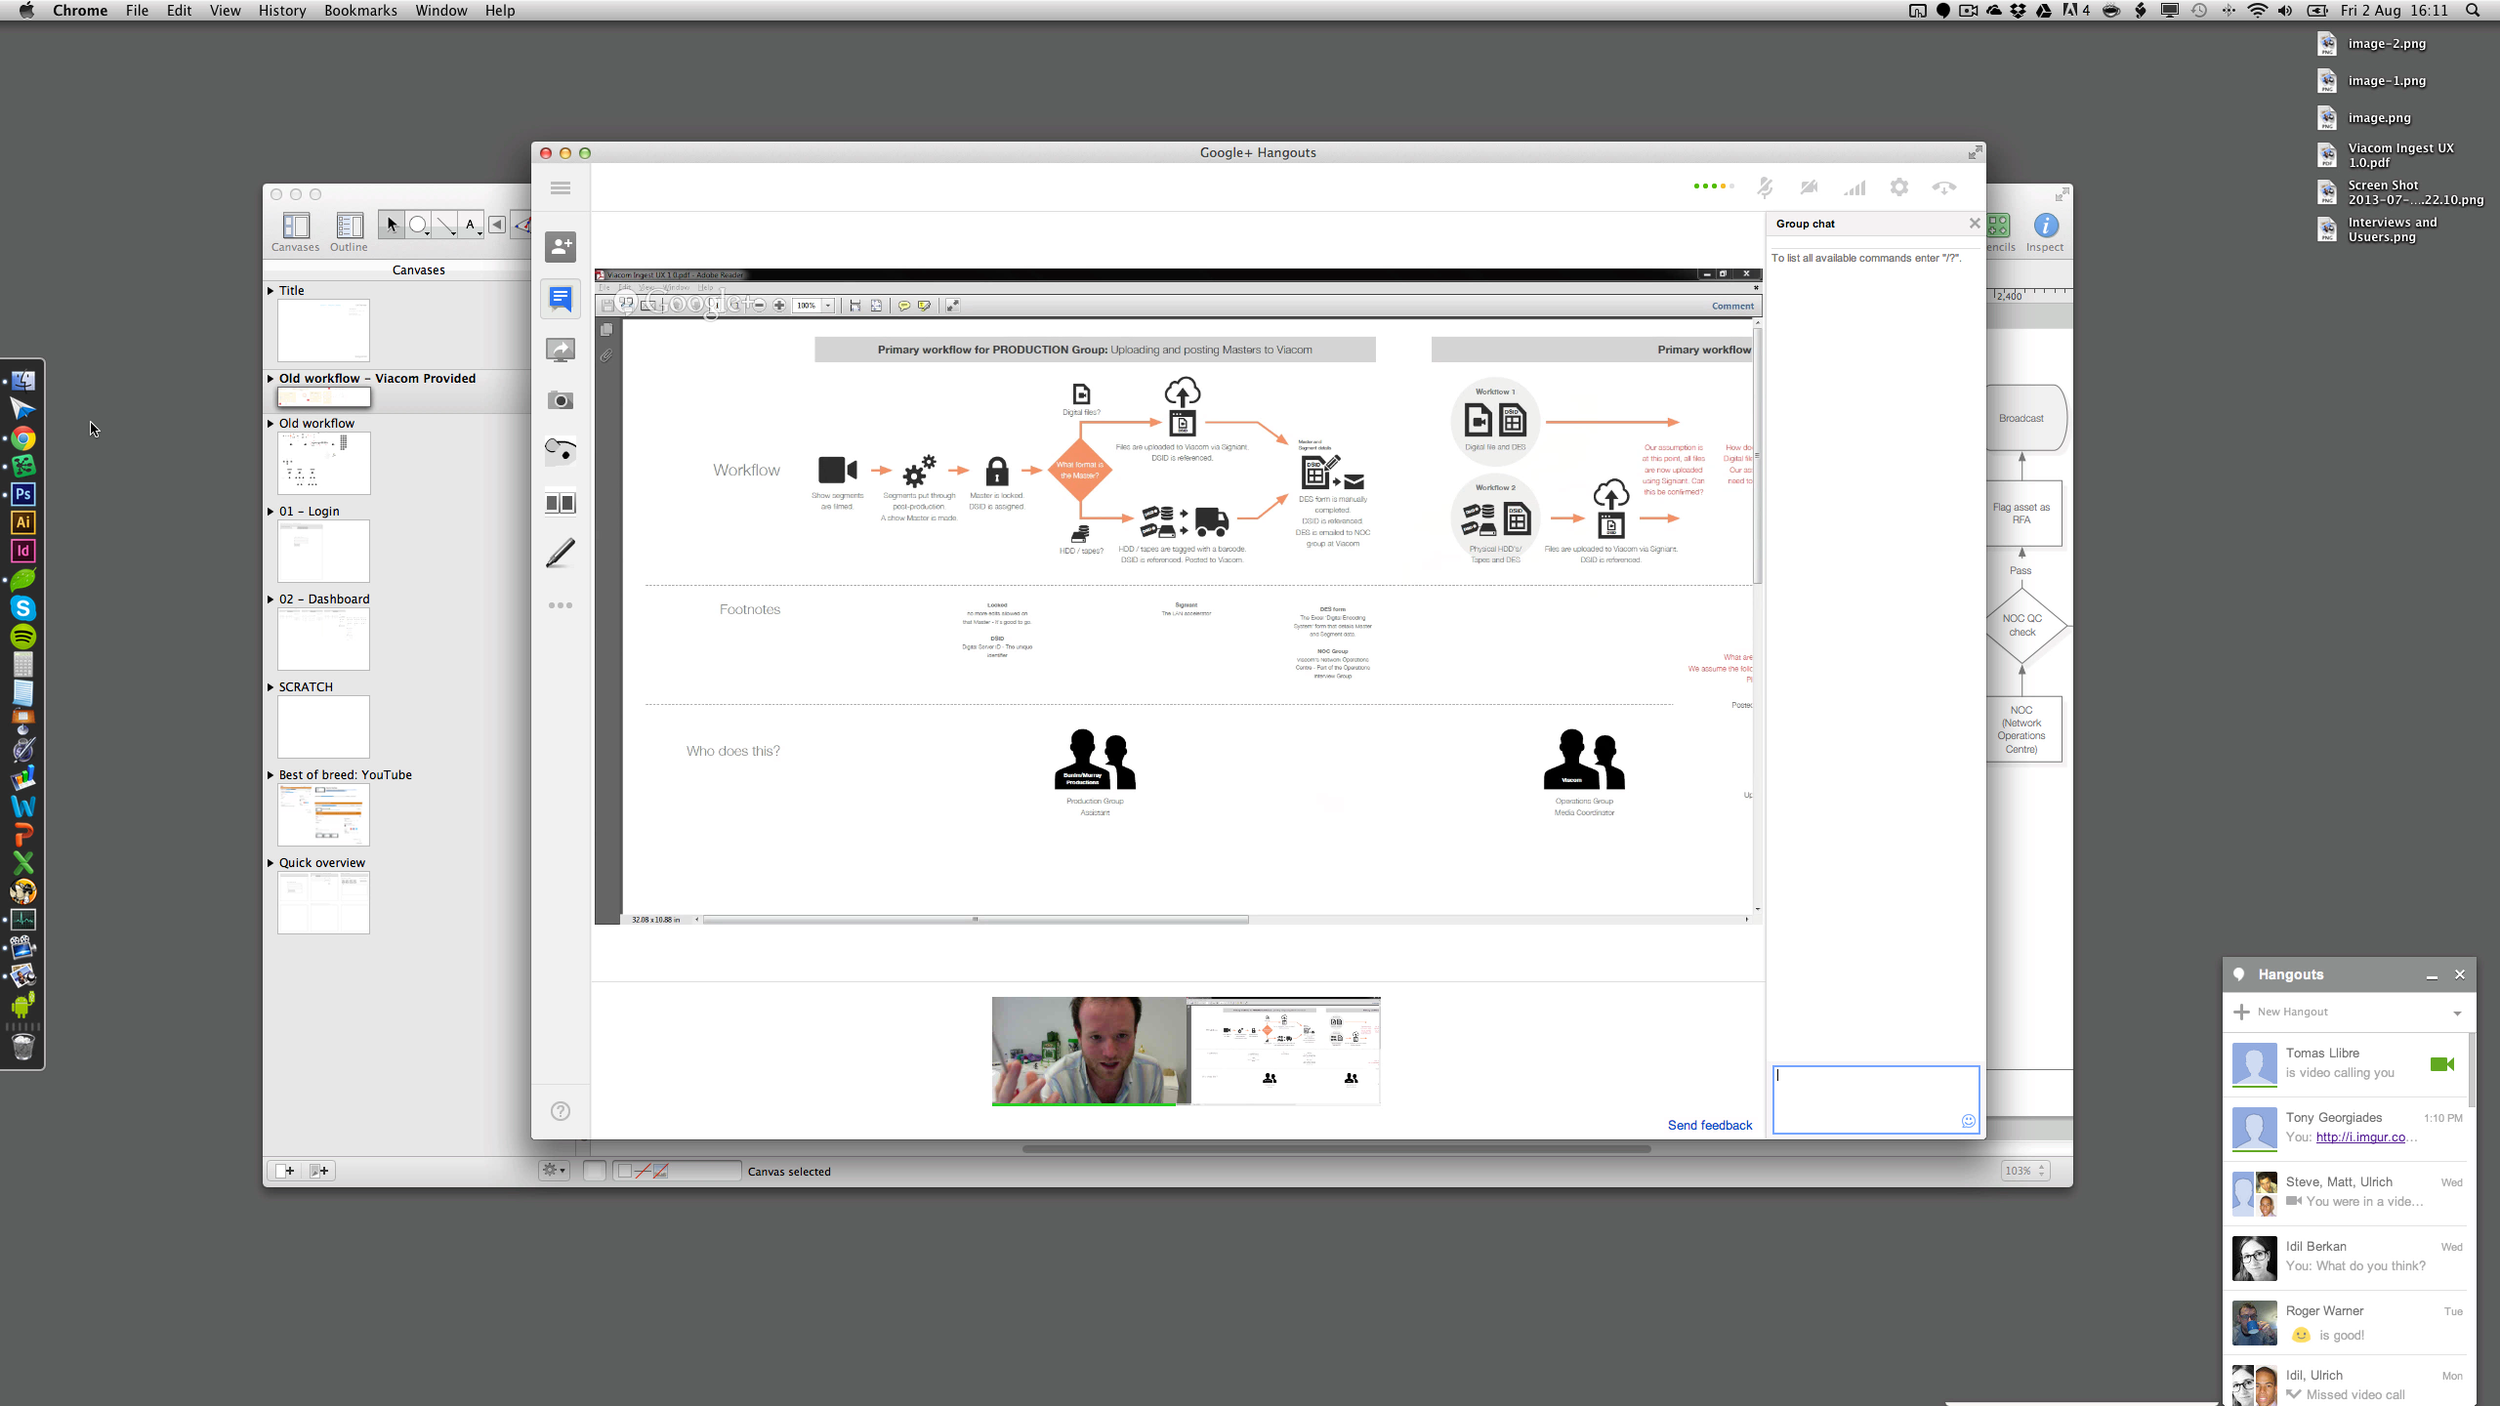 Review of new workflows